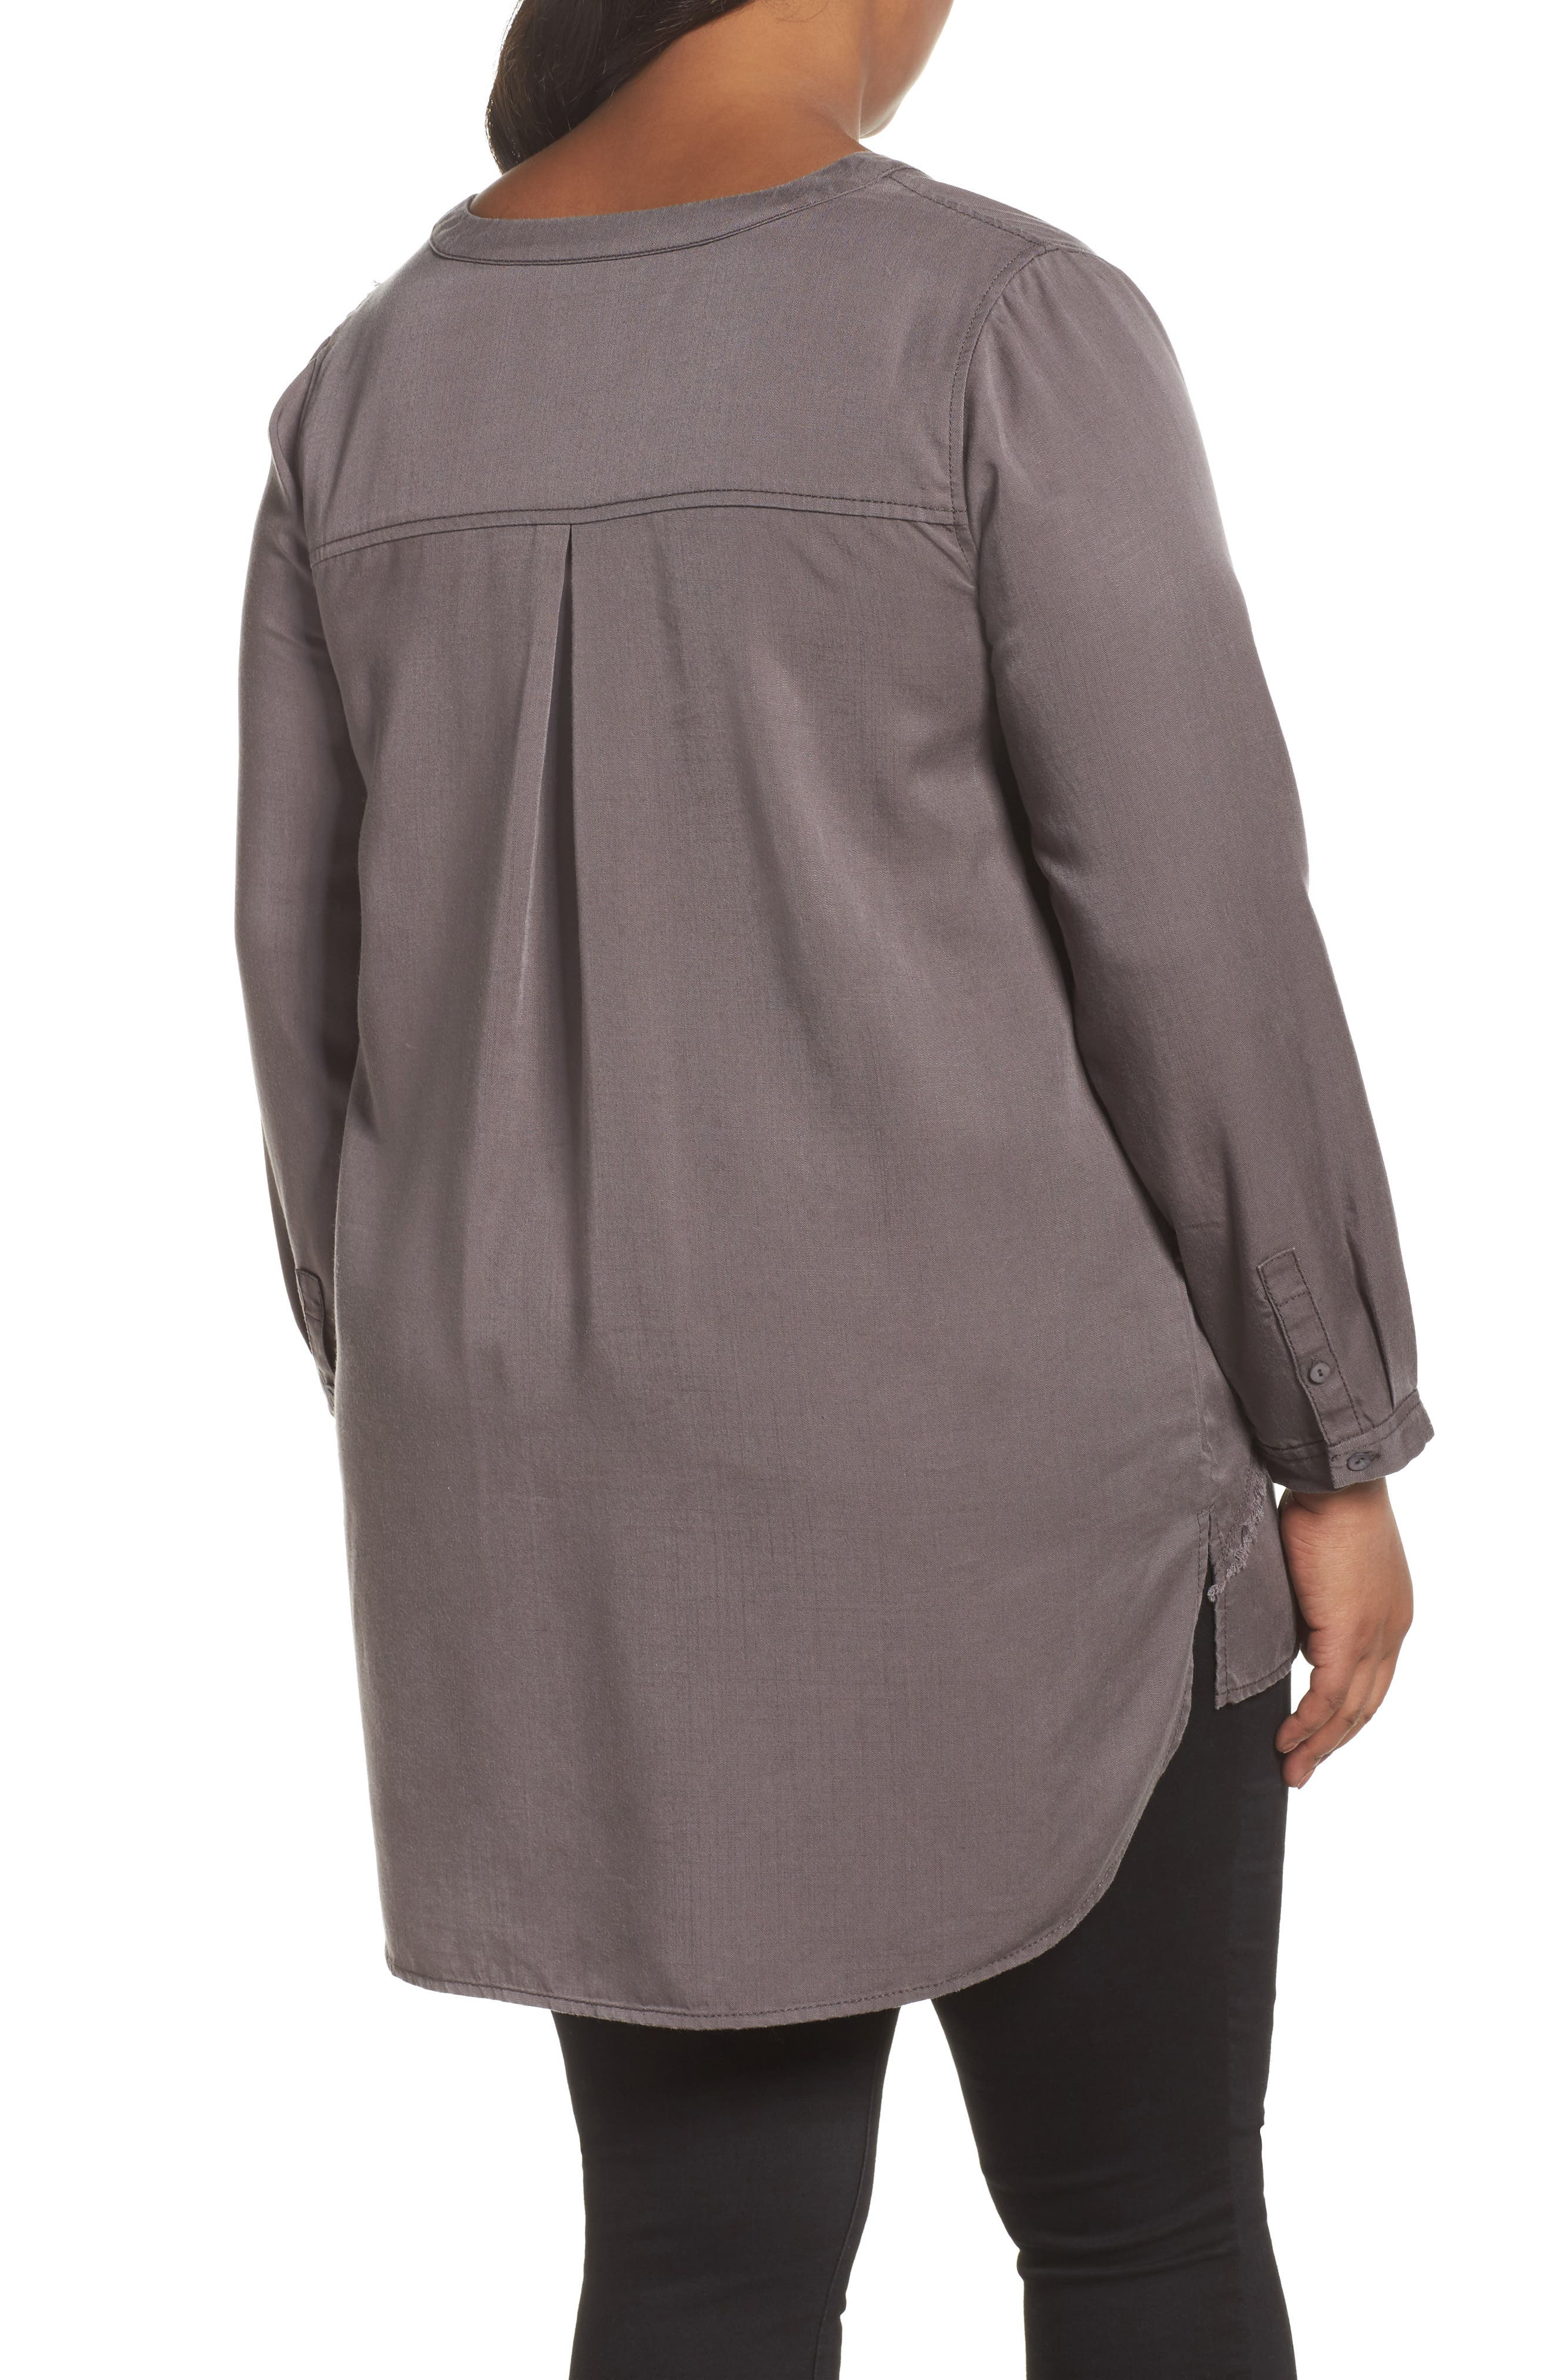 Tranquil Tunic Top,                             Alternate thumbnail 2, color,                             054